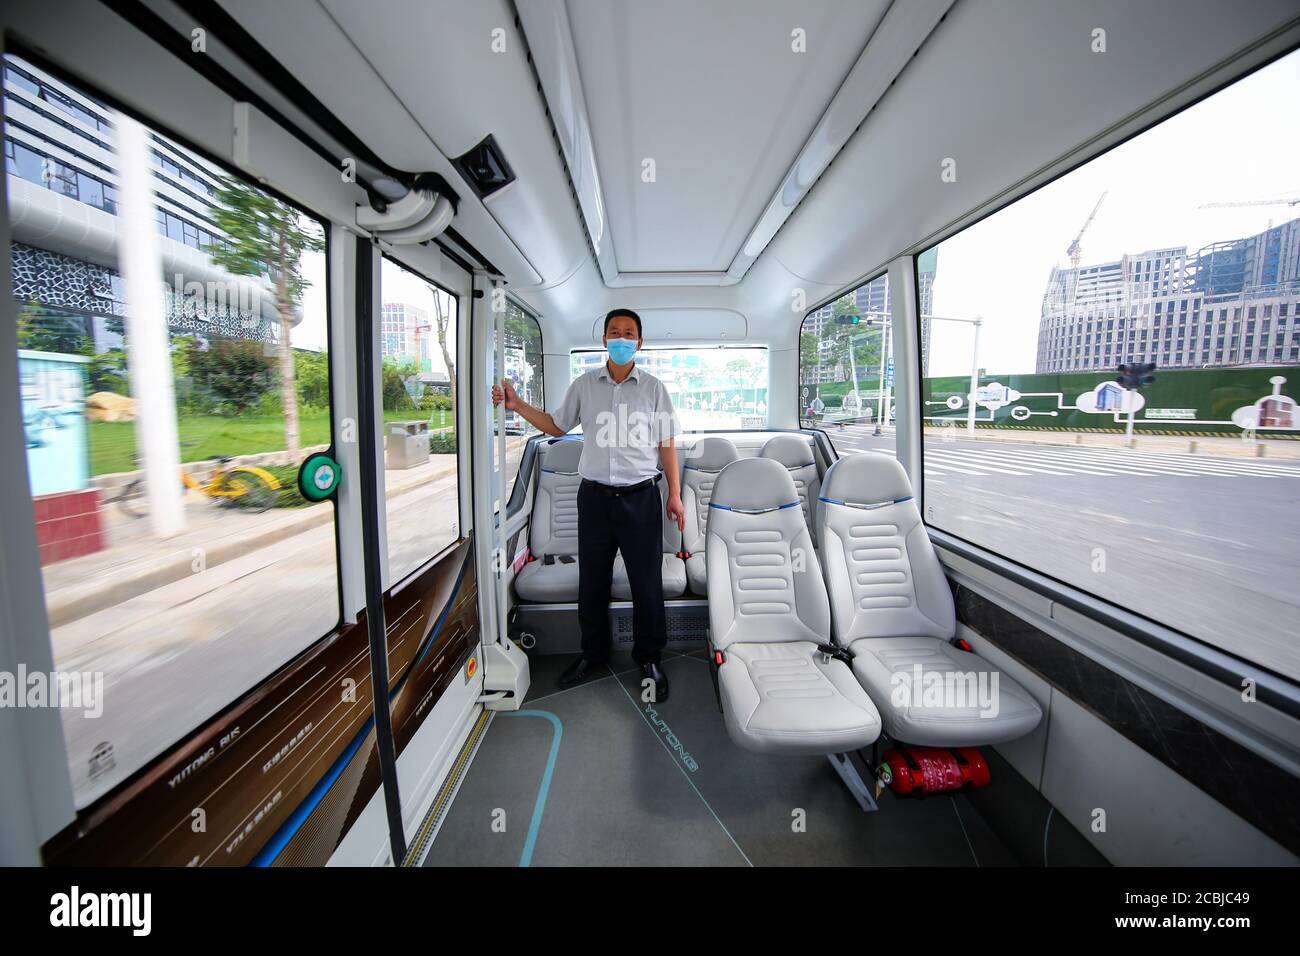 Zhengzhou, Zhengzhou, China. 14th Aug, 2020. Henanï¼Å'CHINA-On August 11, 2020, henan zhengzhou, zhengdong new district give wisdom island lake loop, yutong automated driving bus has run for a year, which is based on 5 g of L4 automated driving bus have highly intelligent, driven and autonomous obstacle avoidance, patrol intersection peers such as task can be accurate, complete, can also identify ambulances, fire engines, etc and take the initiative to give way.''Smart car   smart road   ubiquitous cloud'' is bringing great changes to zhengzhou citizens' travel. Despite being in operation Stock Photo